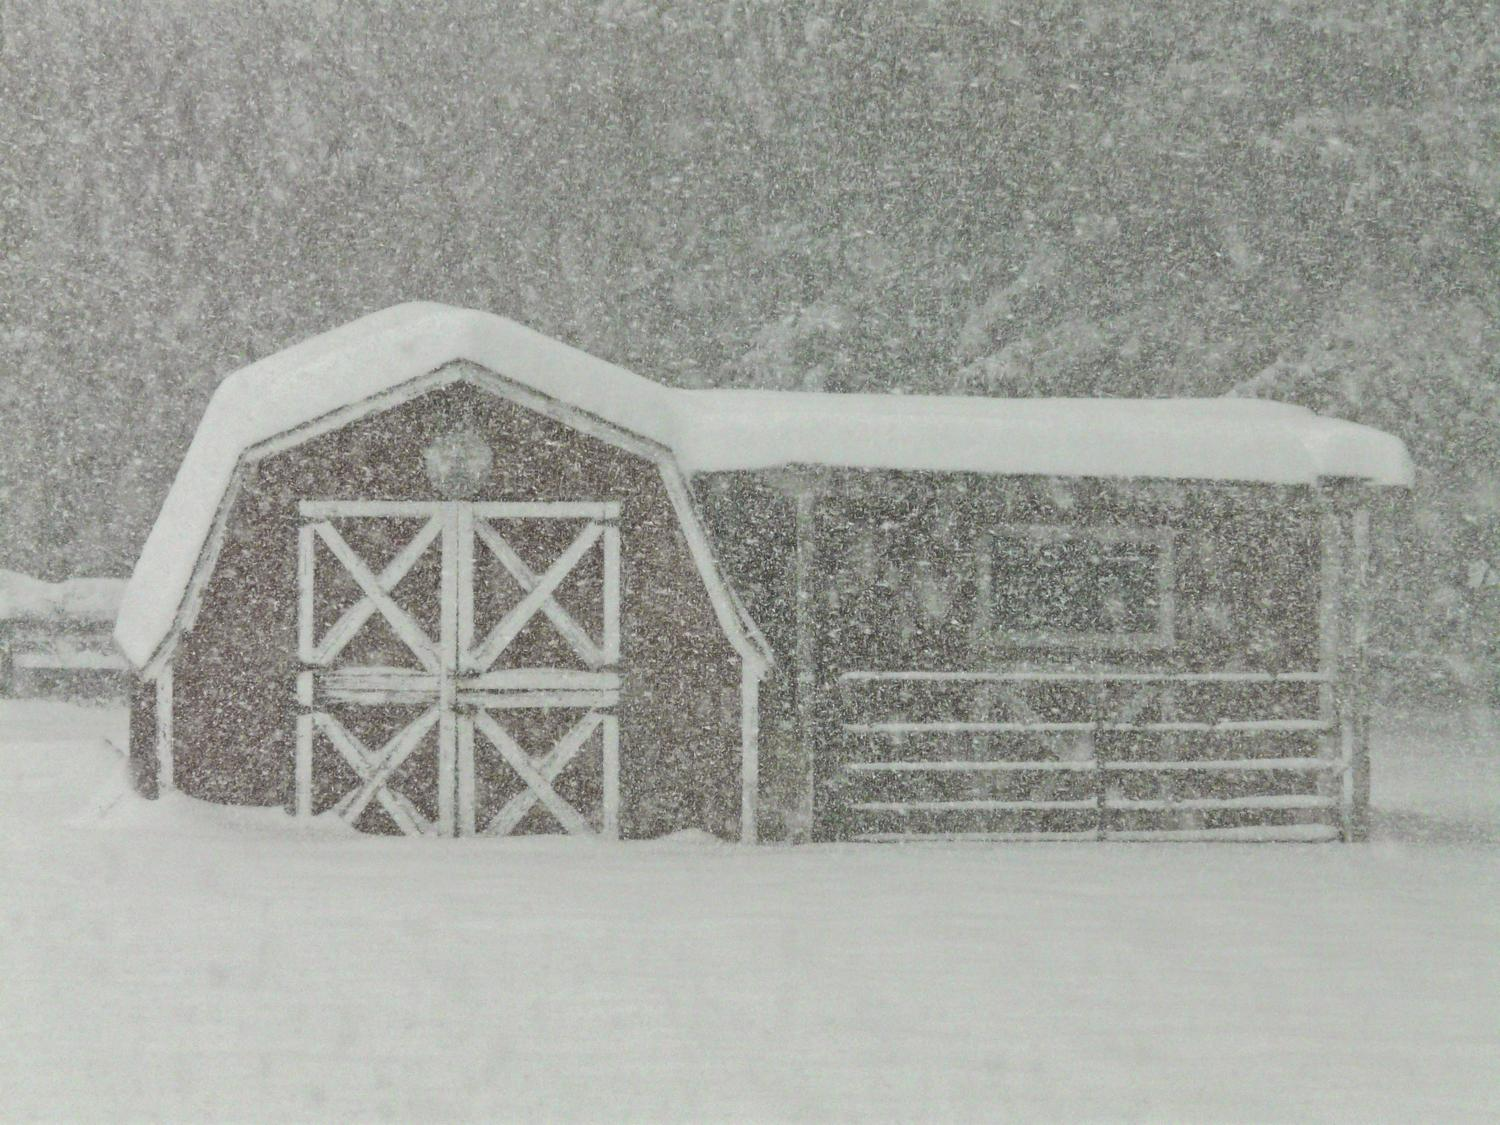 -  Panasonic DMC-FZ18 - Our poor little barn, buried in the snow. - - art  - photography - by Tony Karp